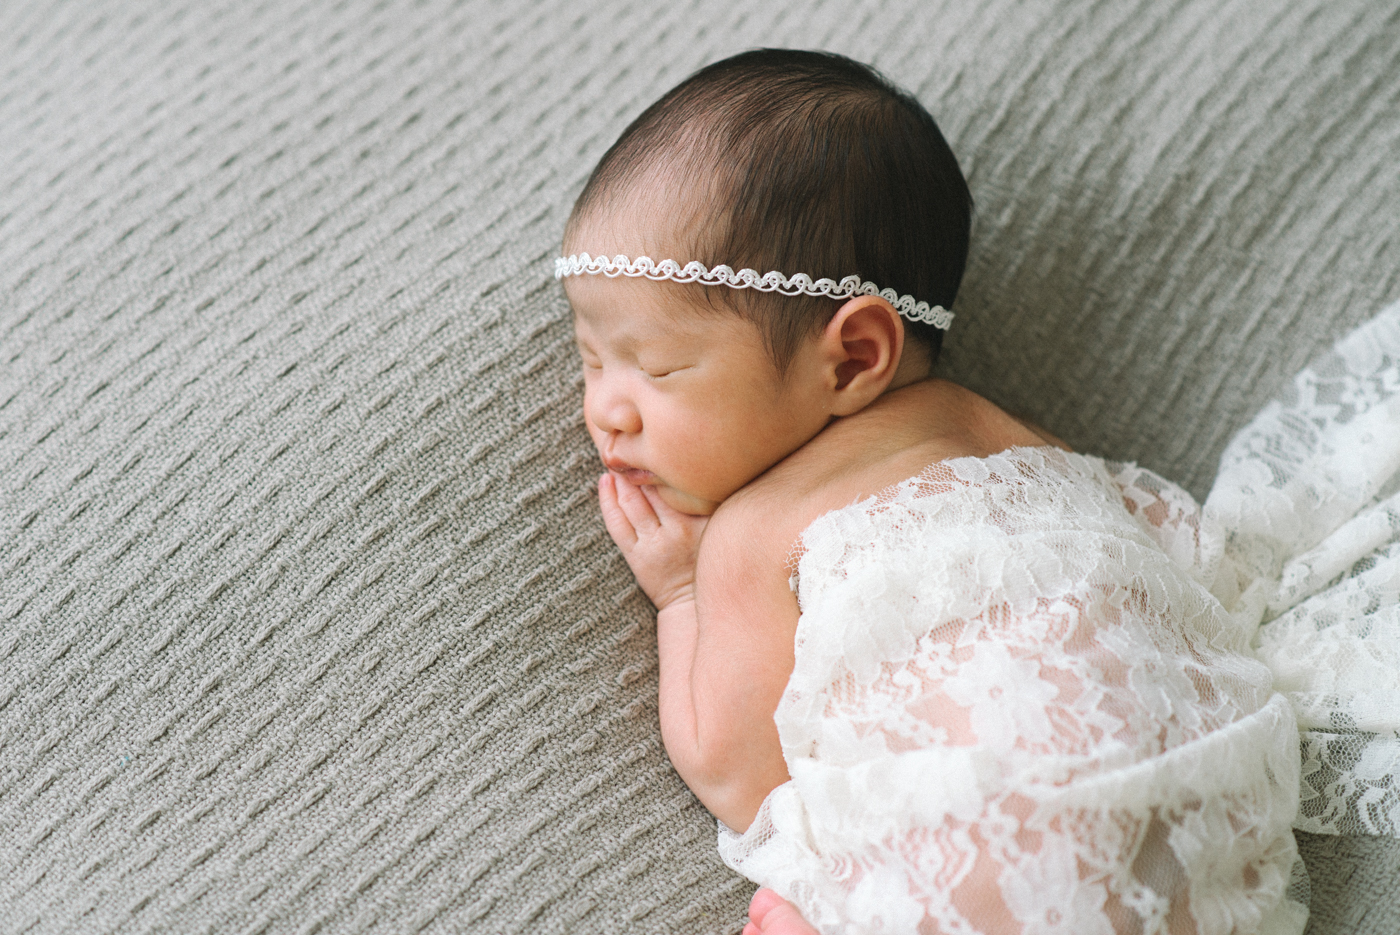 Best-Portland-Oregon-Newborn-photography-Sleeping-Baby-Maternity-Photographer-White-Lace-Wrap-Ribbon-String-Headband-Gray-Knit-Blanket-Shelley-Marie-Photography.jpg